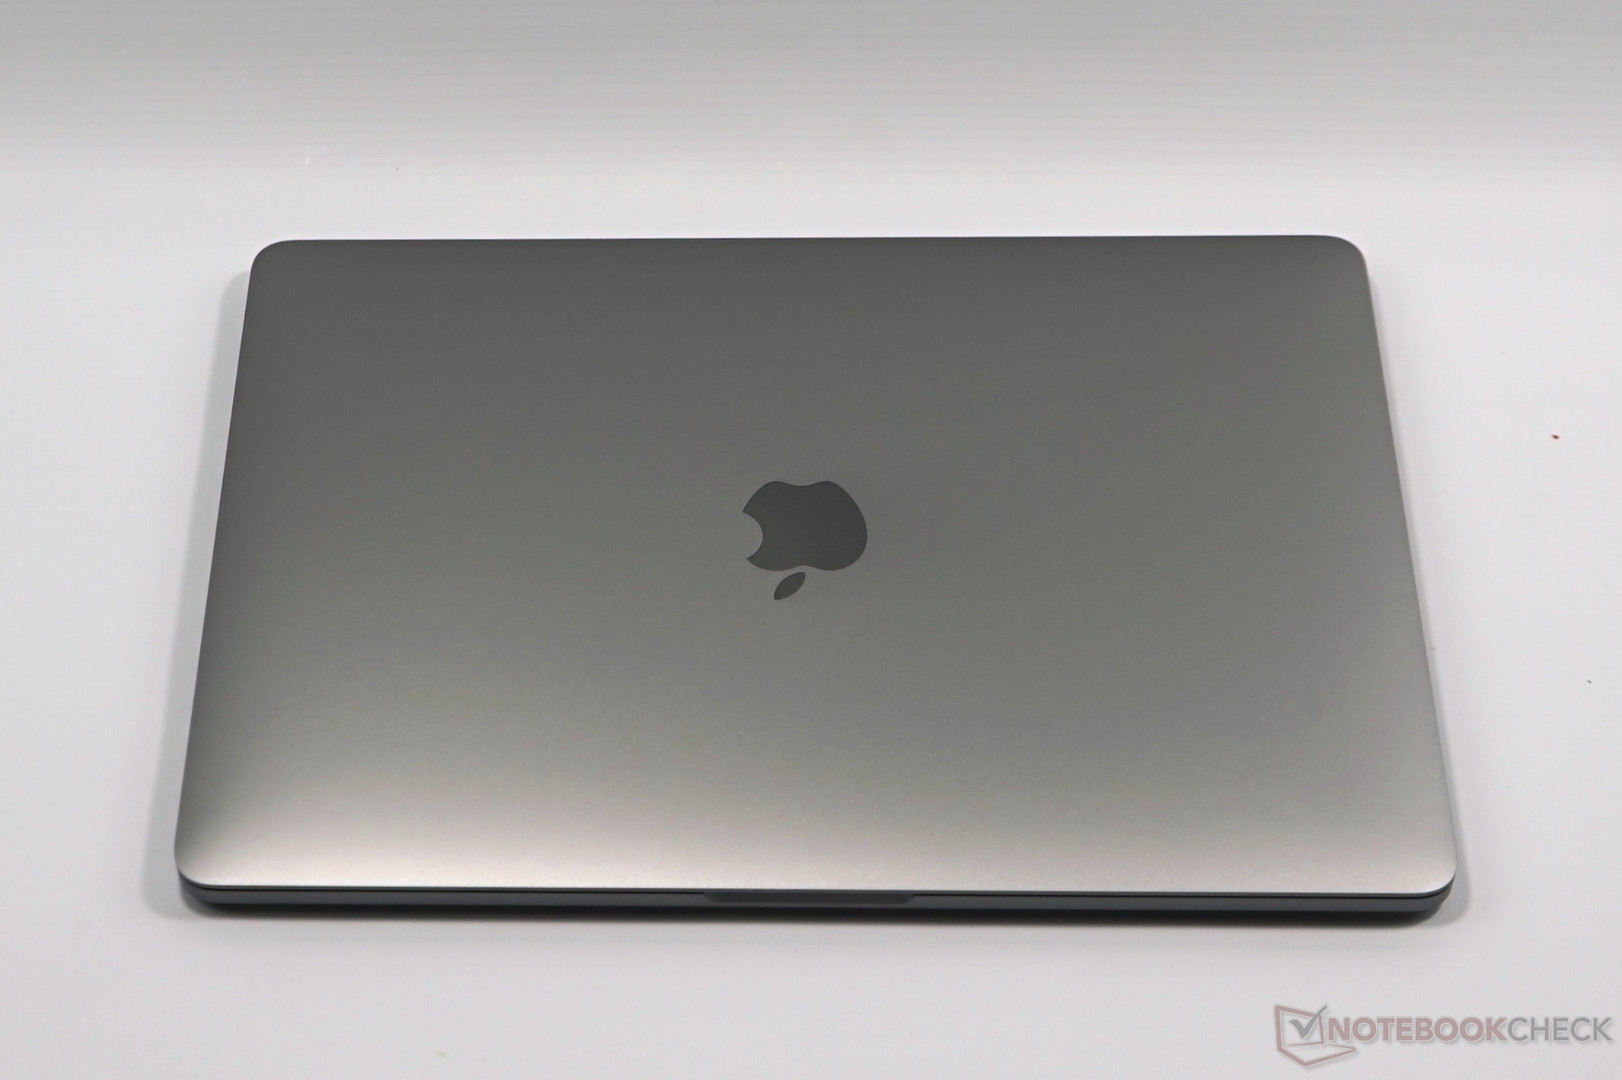 8486f9ef71f Apple MacBook Pro 13 2018 Series - Notebookcheck.net External Reviews